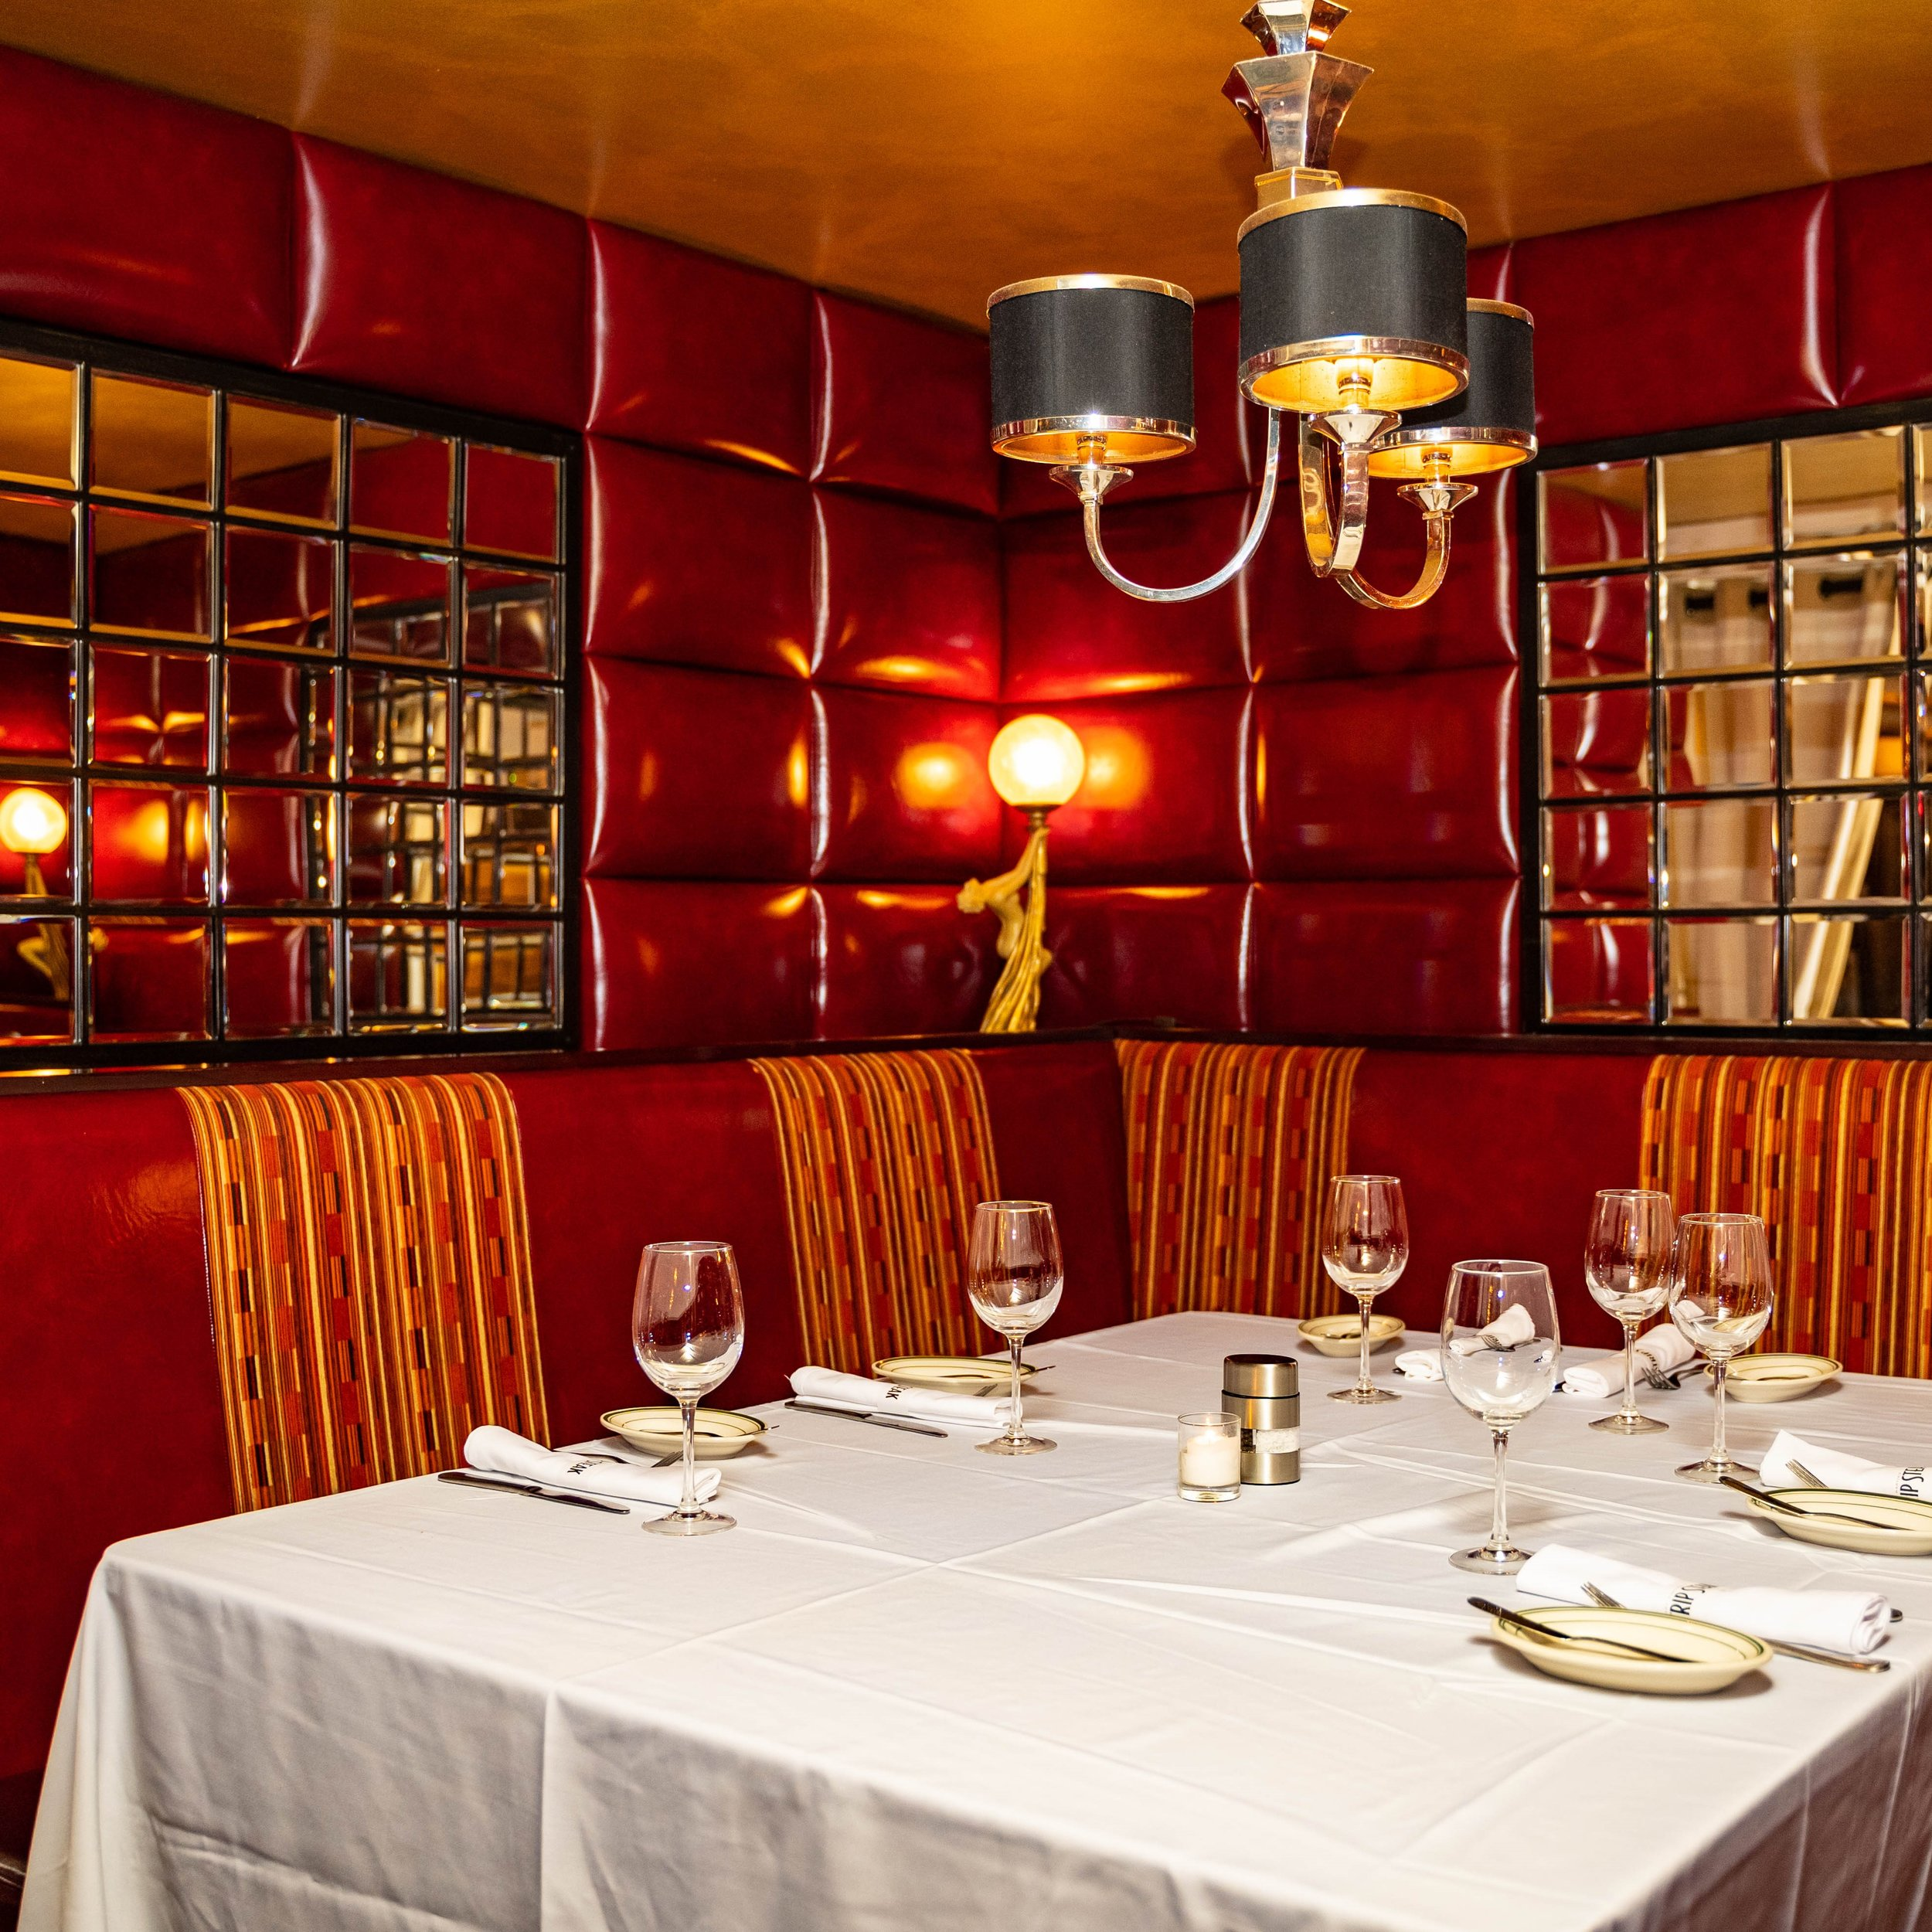 A photo of our Red Room dining space.